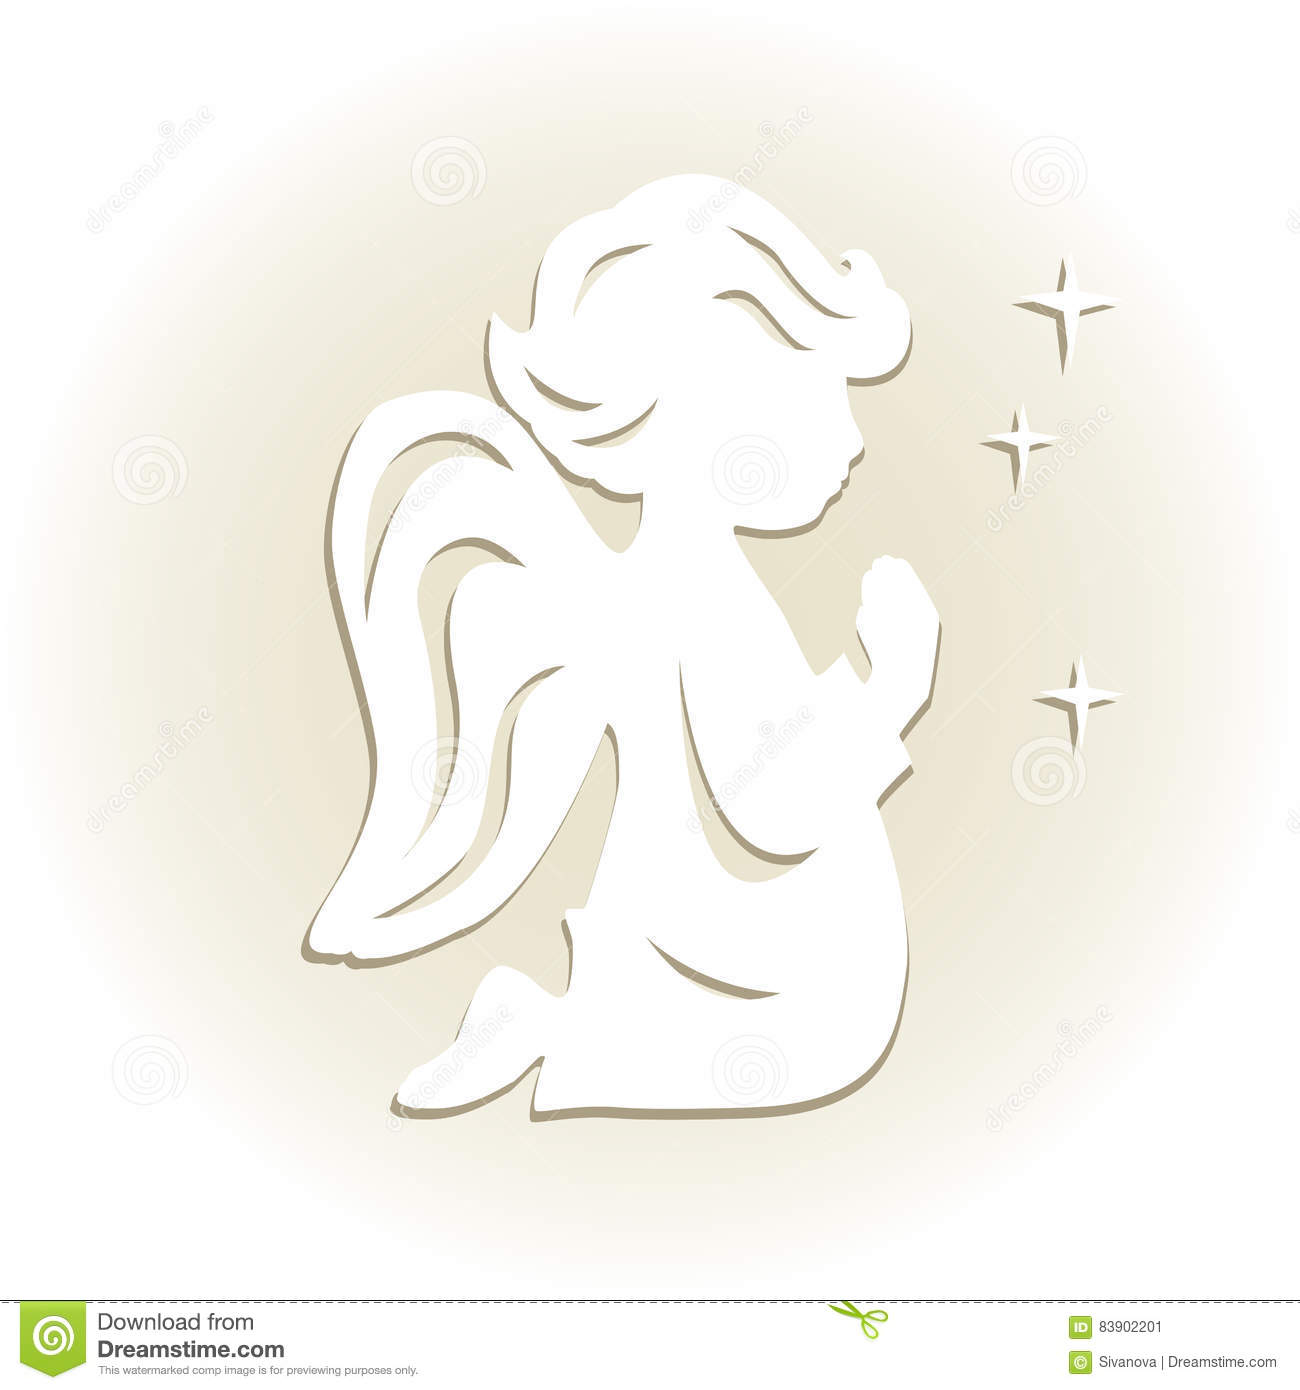 Cute Little Angel Stock Vector Illustration Of Dress Jpg 1300x1390 Cut Out